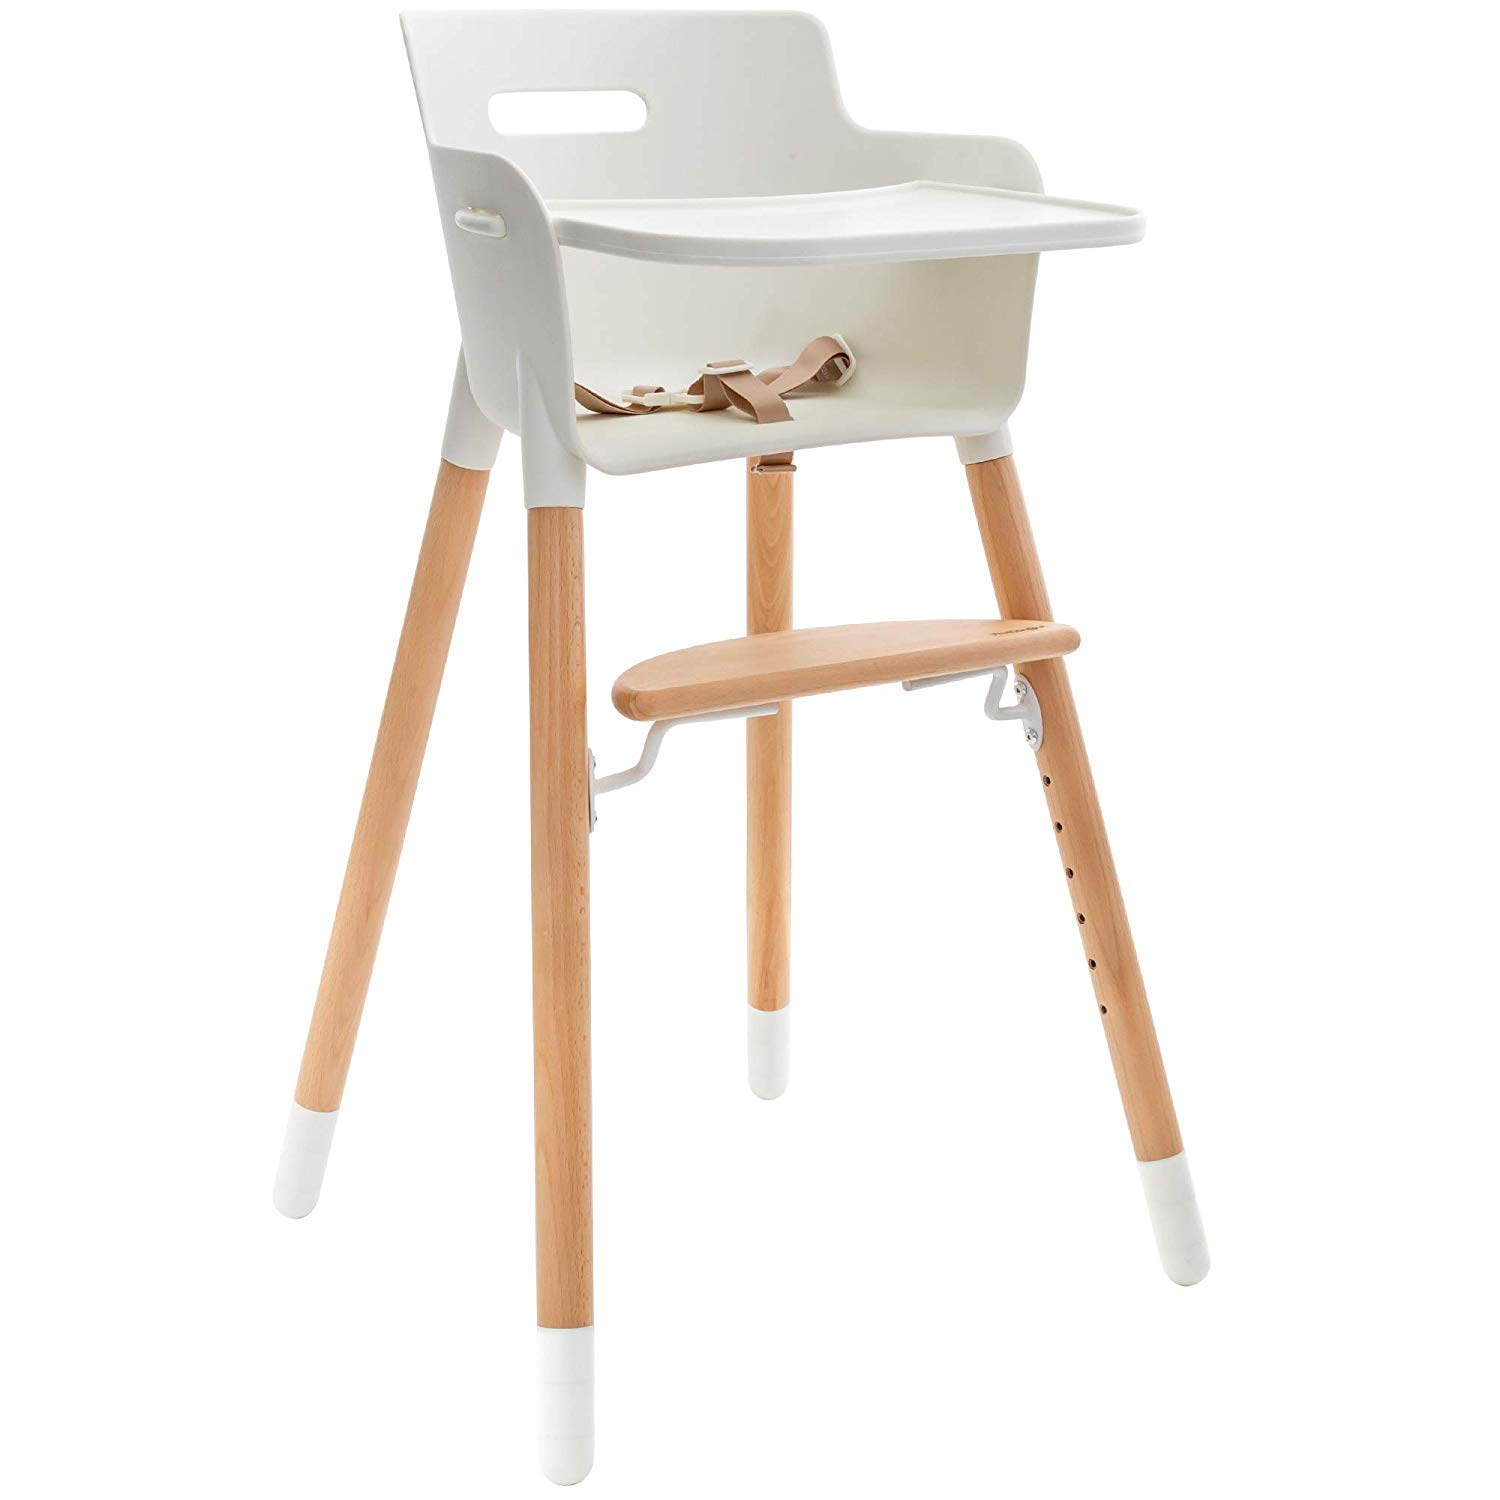 WeeSprout Wooden High Chair for Babies & Toddlers | 3-in-1 High Chair/Booster/Chair | Grows with Your Child | Adjustable Footrest/Legs | Removable Tray/Armrest | Modern Wood Design